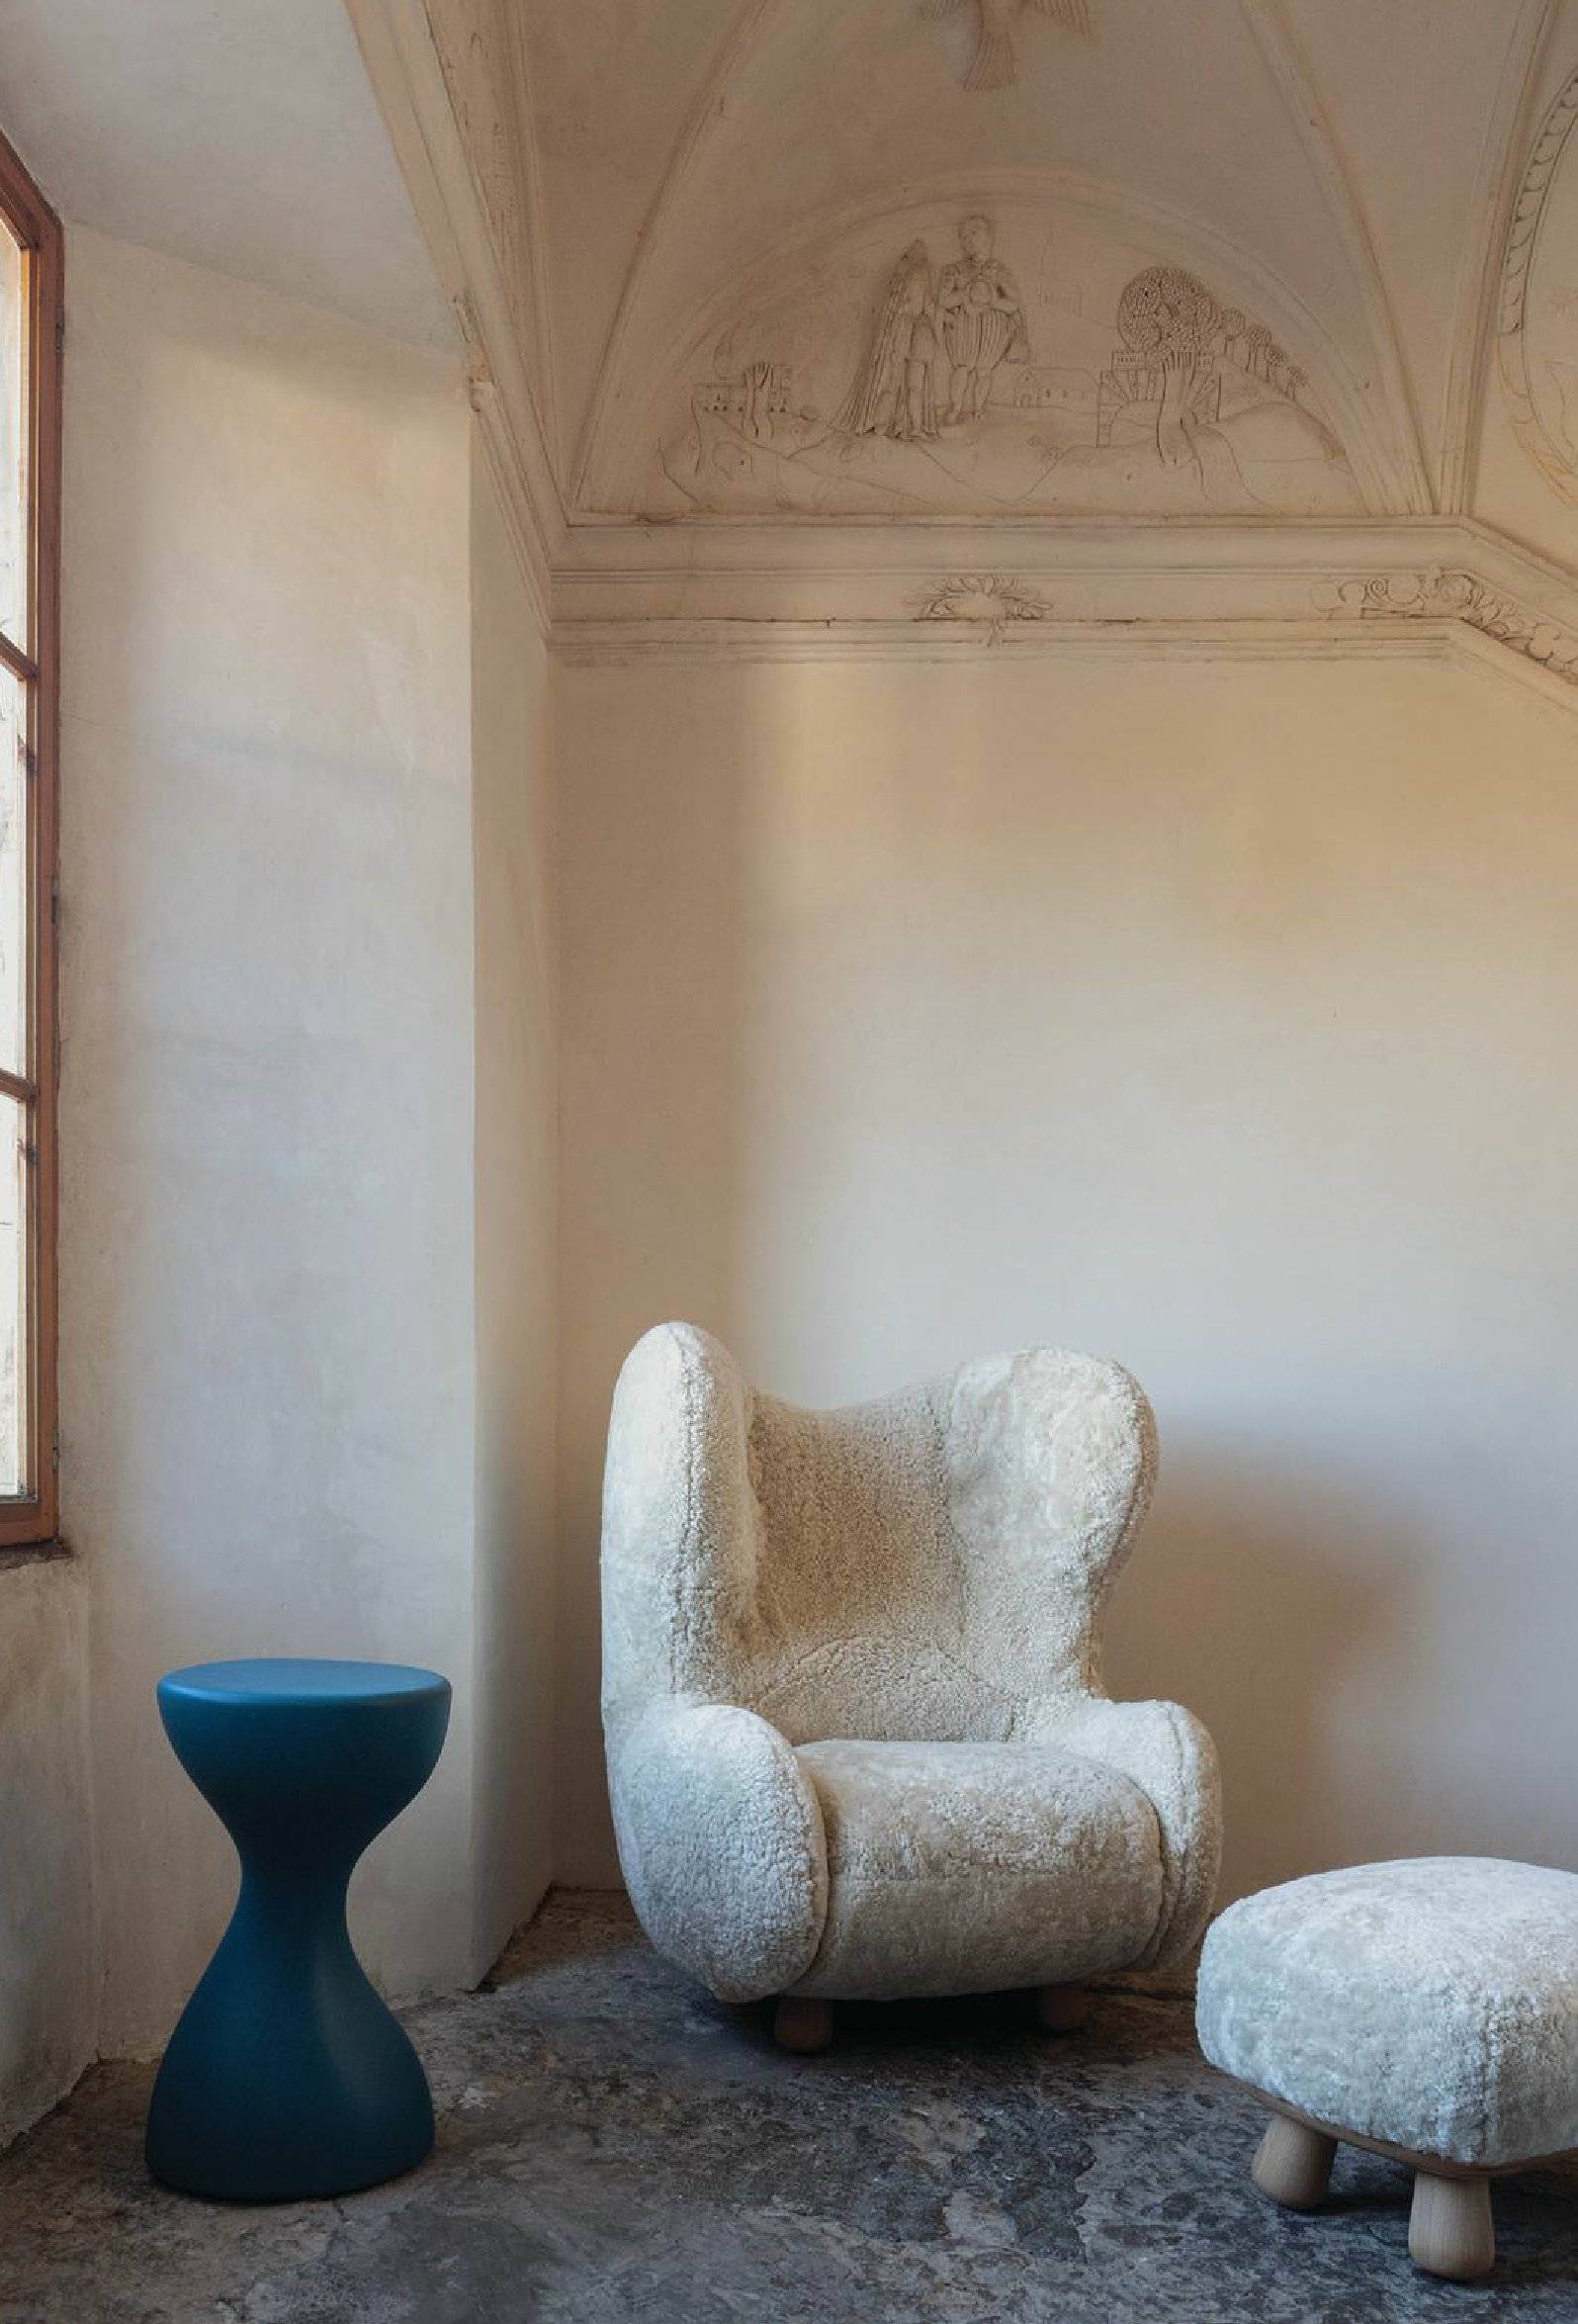 The Clifford armchair and ottoman are upholstered in sheepskin, while the Tipsy side table—made to look like a bottle—is made from tinted acrylic resin PHOTO BY GIULIO GHIRARDI